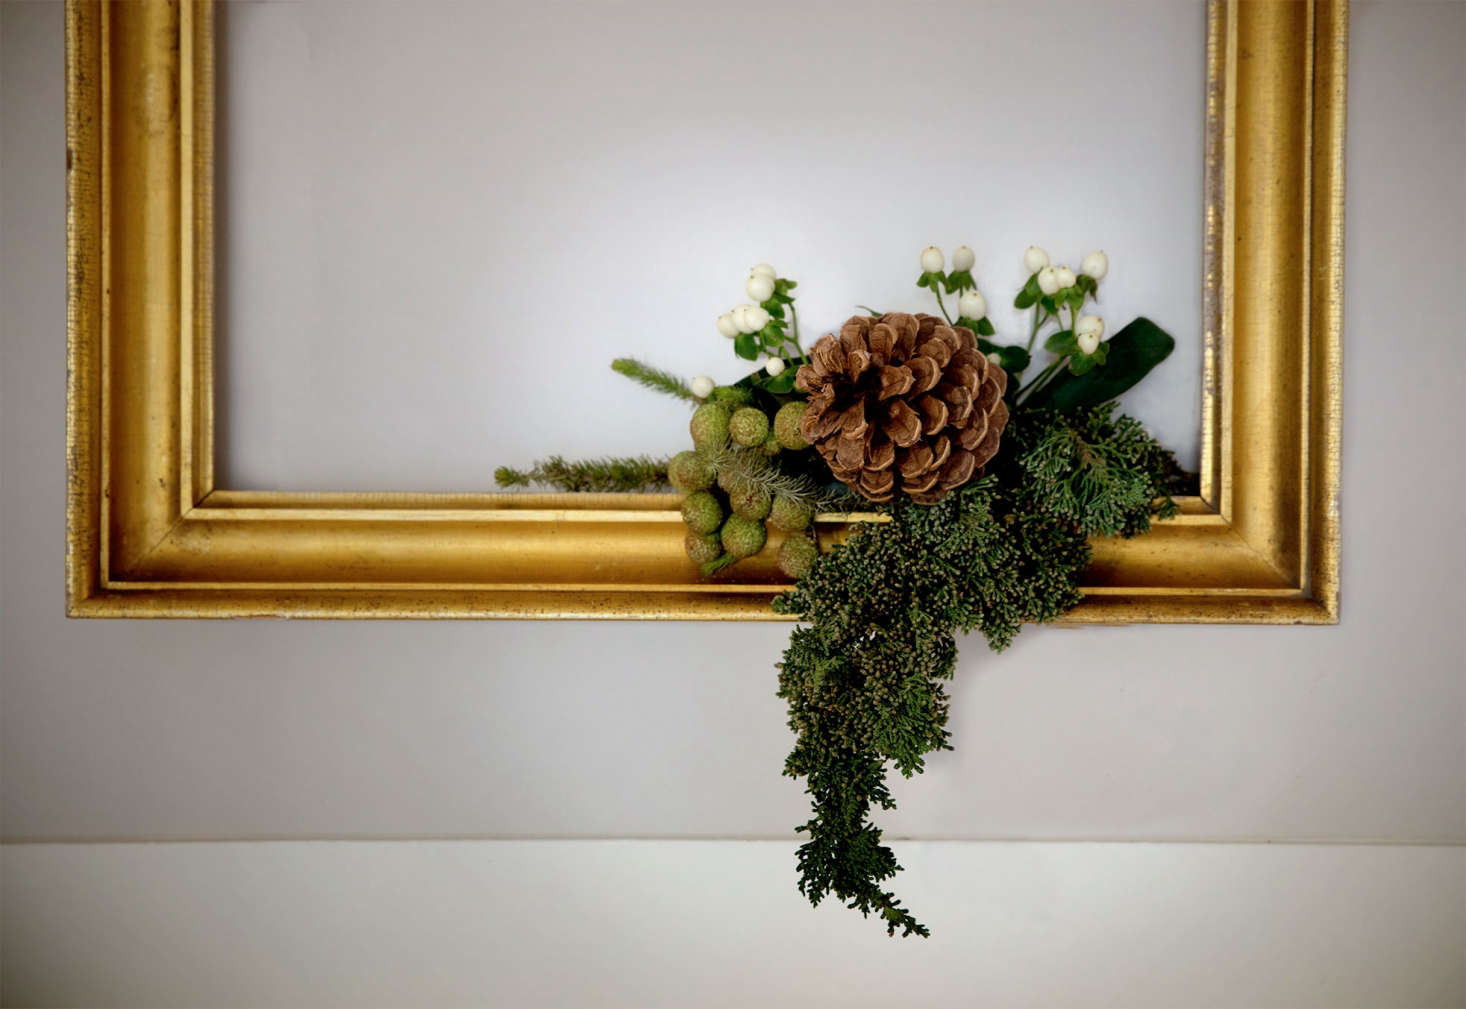 I started with a large branch of juniper, which I simply stuck into the frame. From there I began to build, adding a pine cone and berries until I had the basis of the composition.